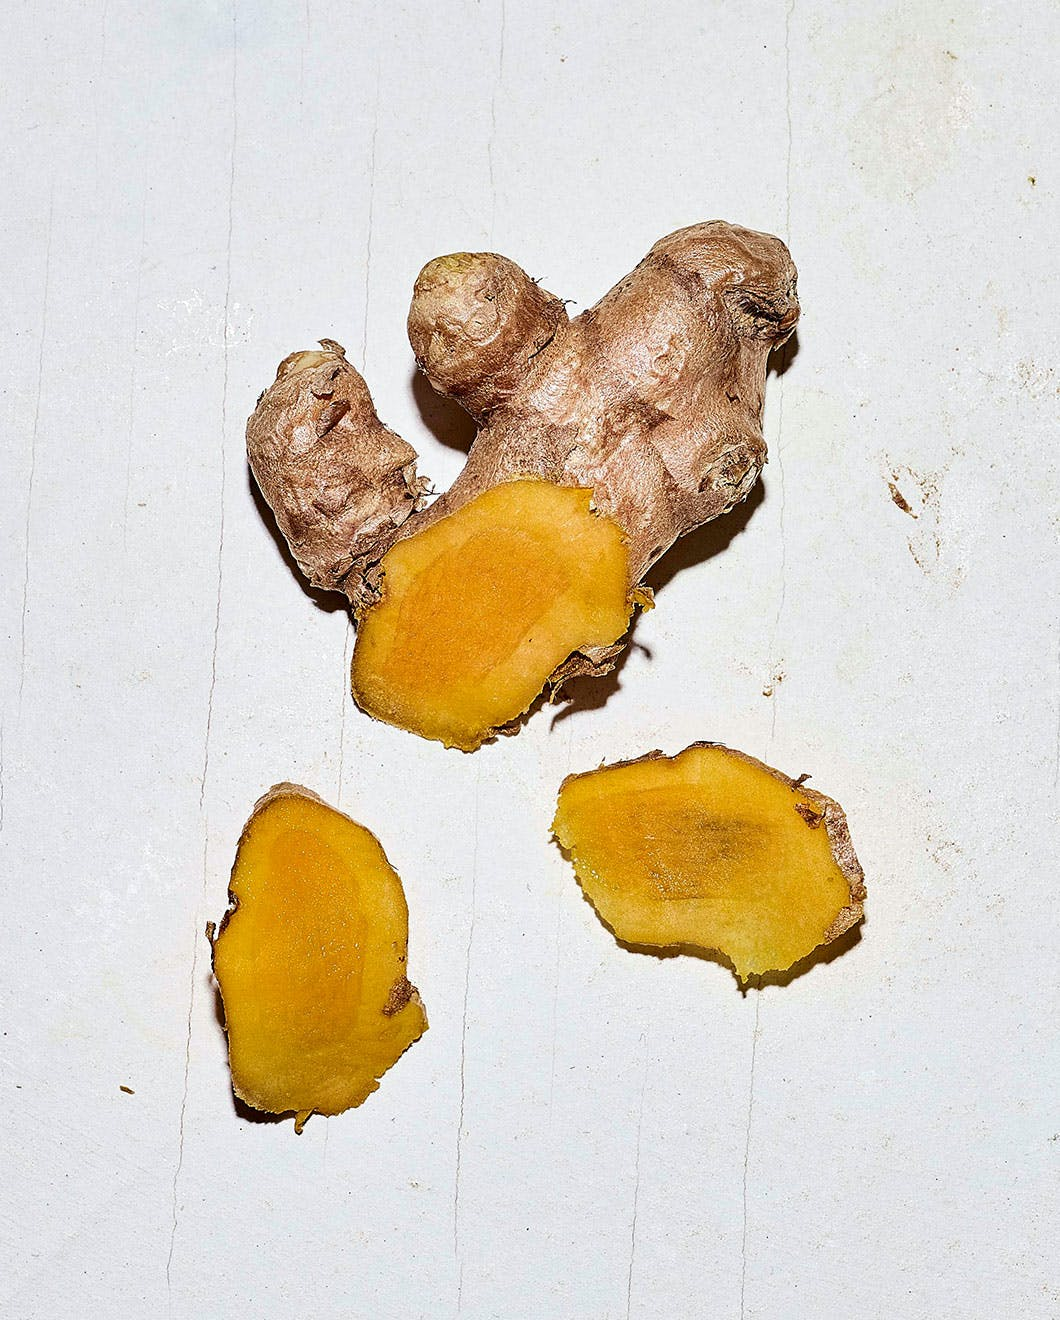 Turmeric ingredient